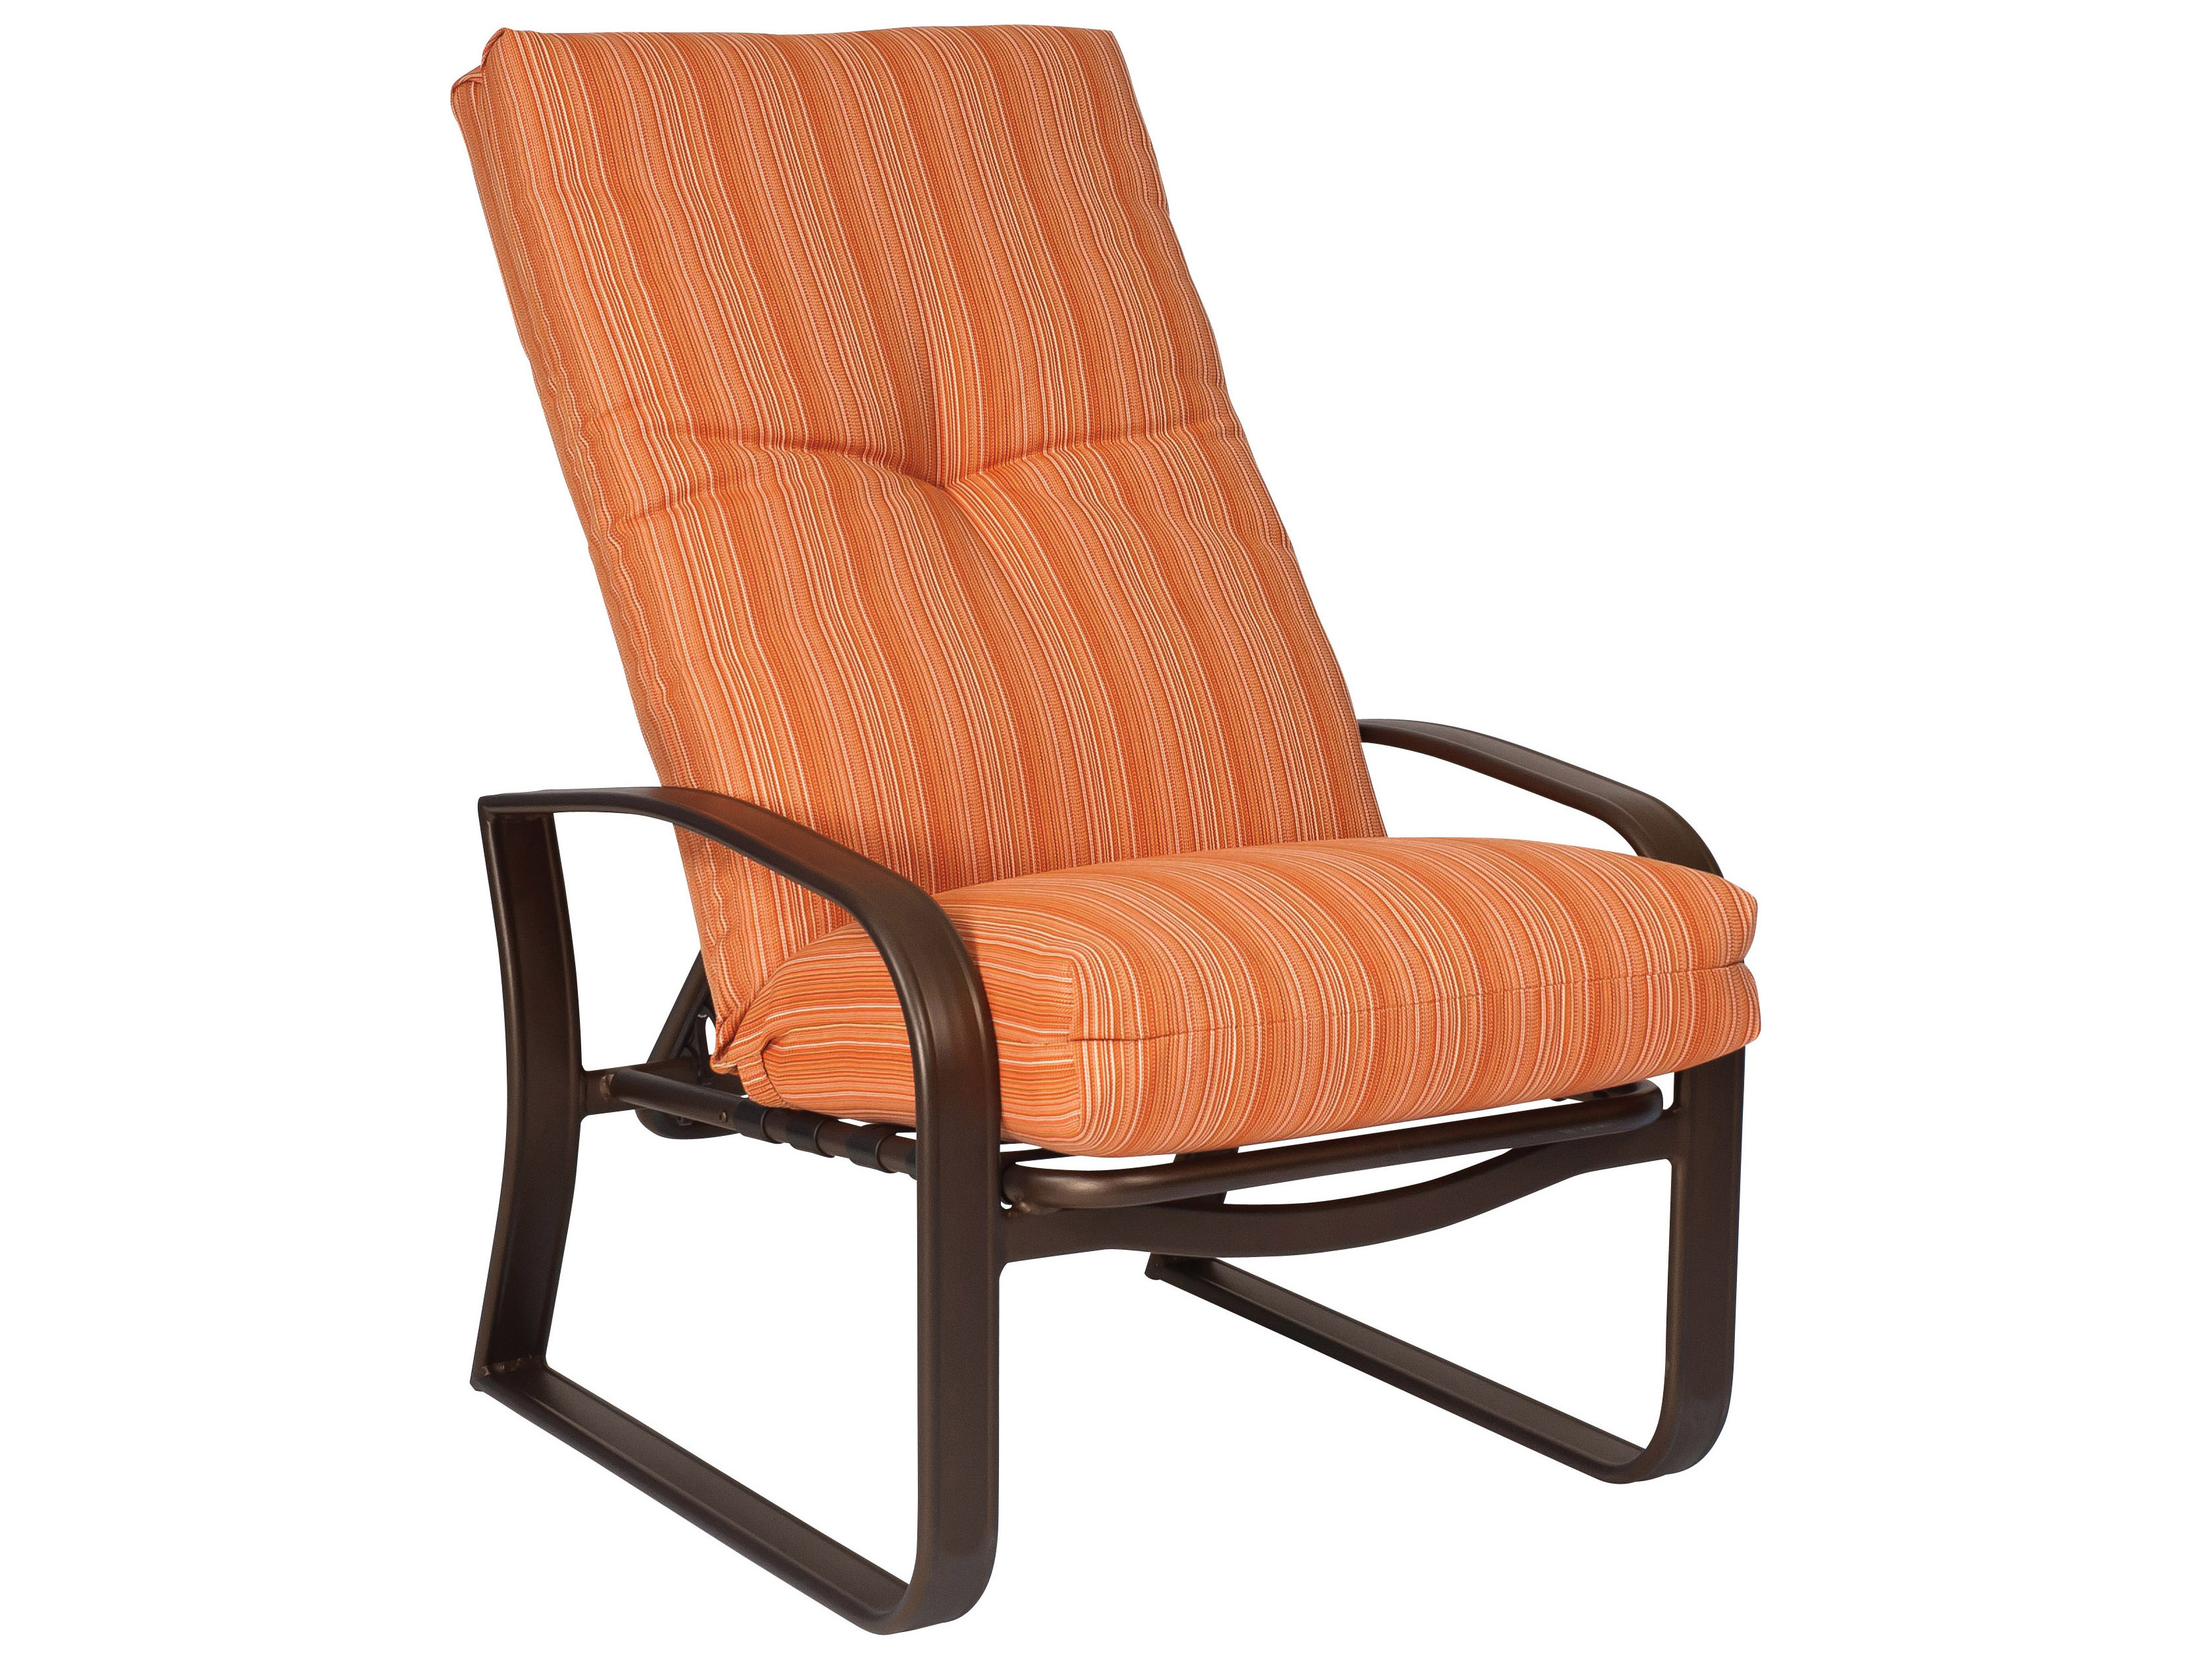 Woodard Cayman Isle Adjustable Lounge Chair Replacement